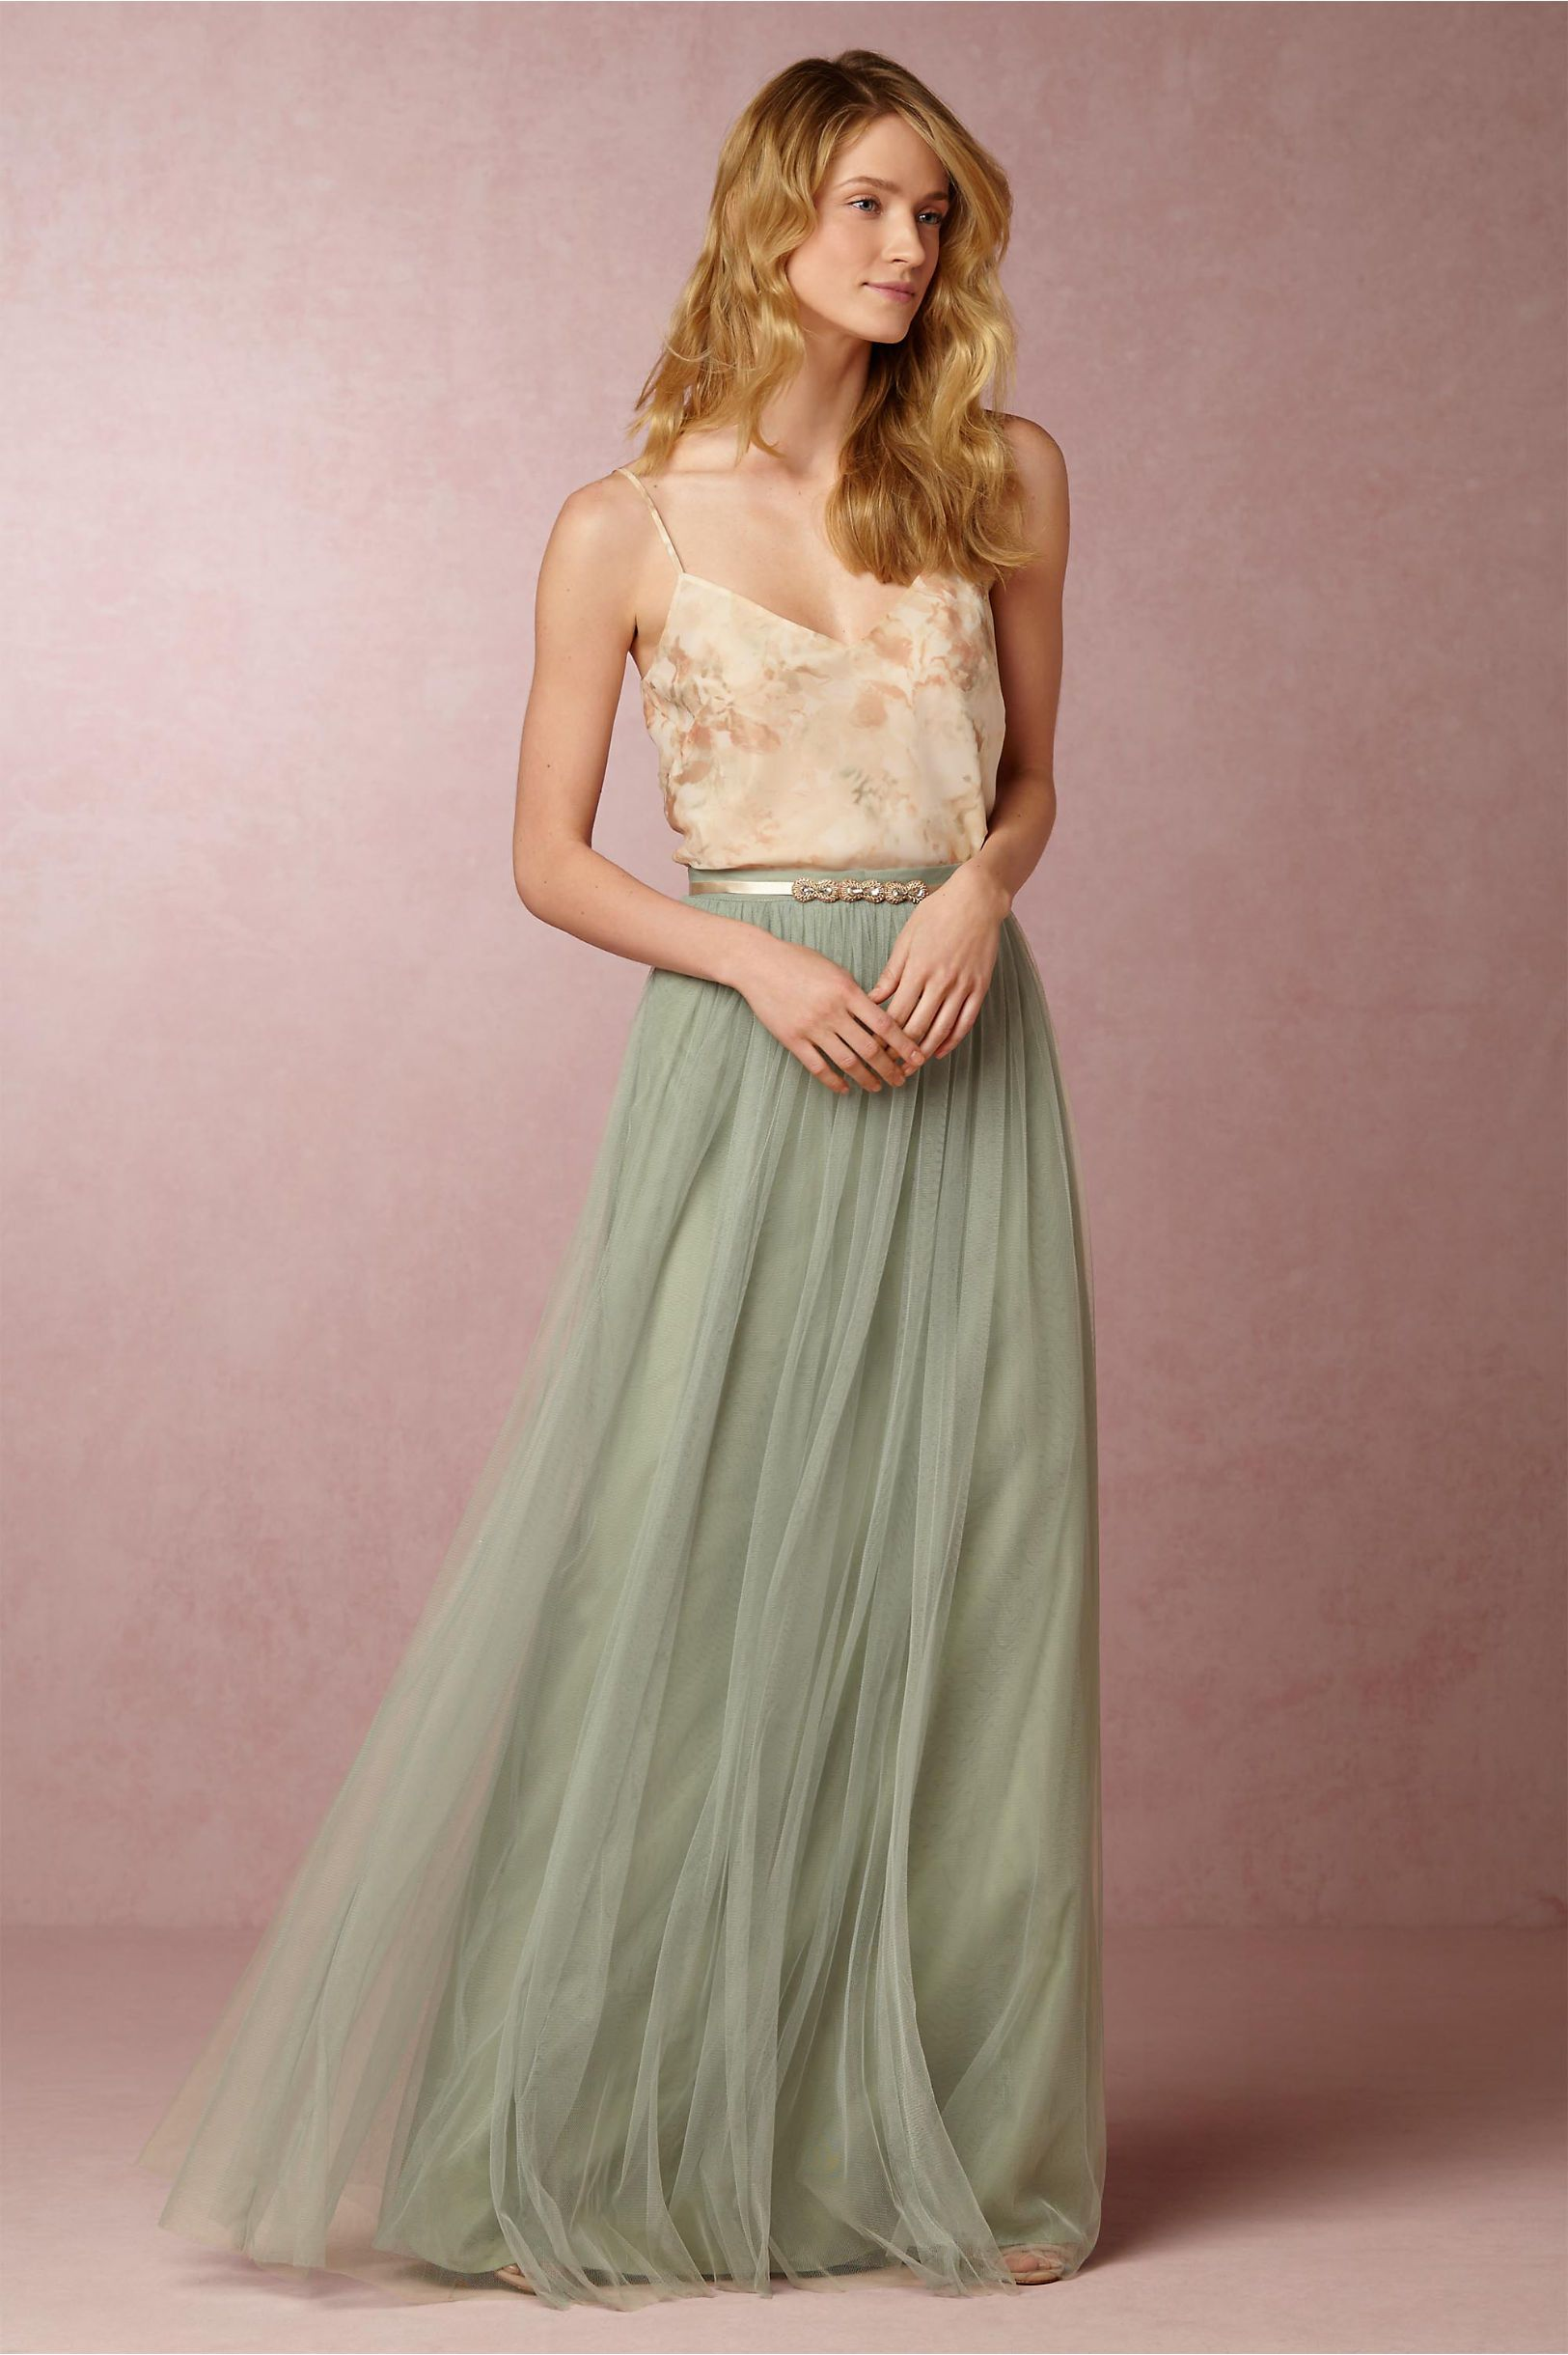 Trauzeugin Kleid Glitzer Bhldn Liv Cami Louise Tulle Skirt In Bridesmaids View All